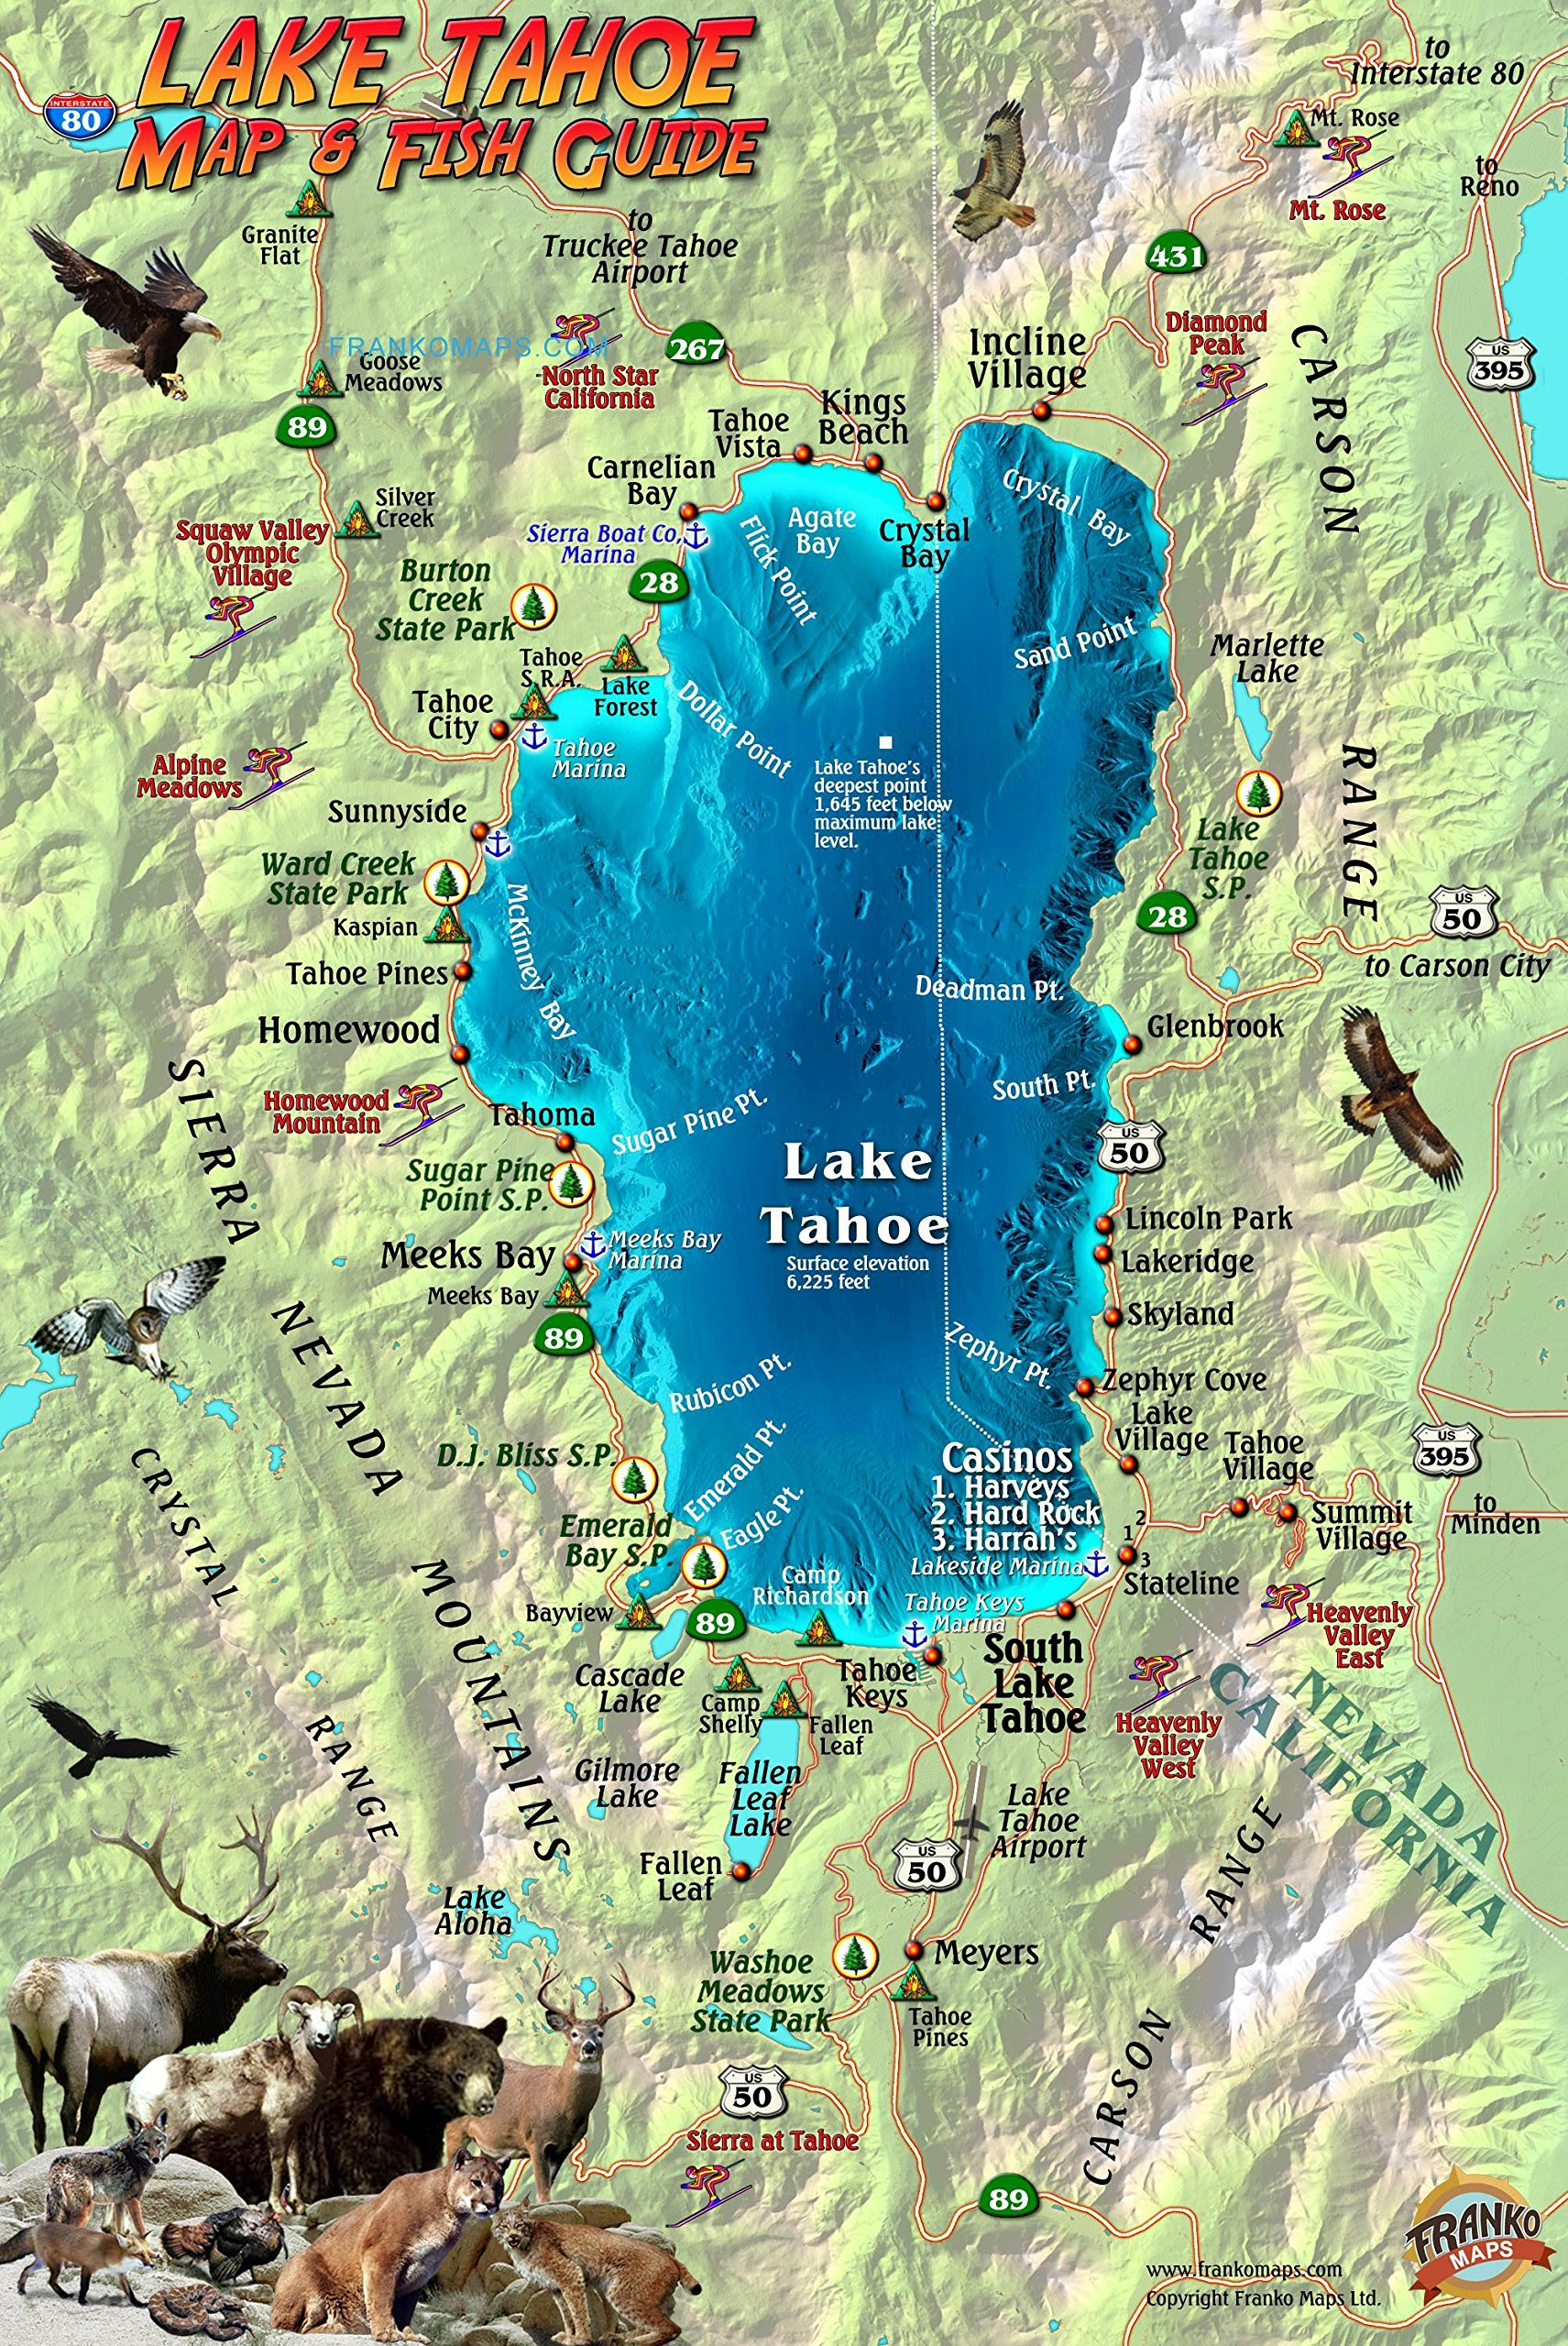 lake tahoe on a map Buy Lake Tahoe Map Fish Guide Franko Maps Laminated Fish Card lake tahoe on a map